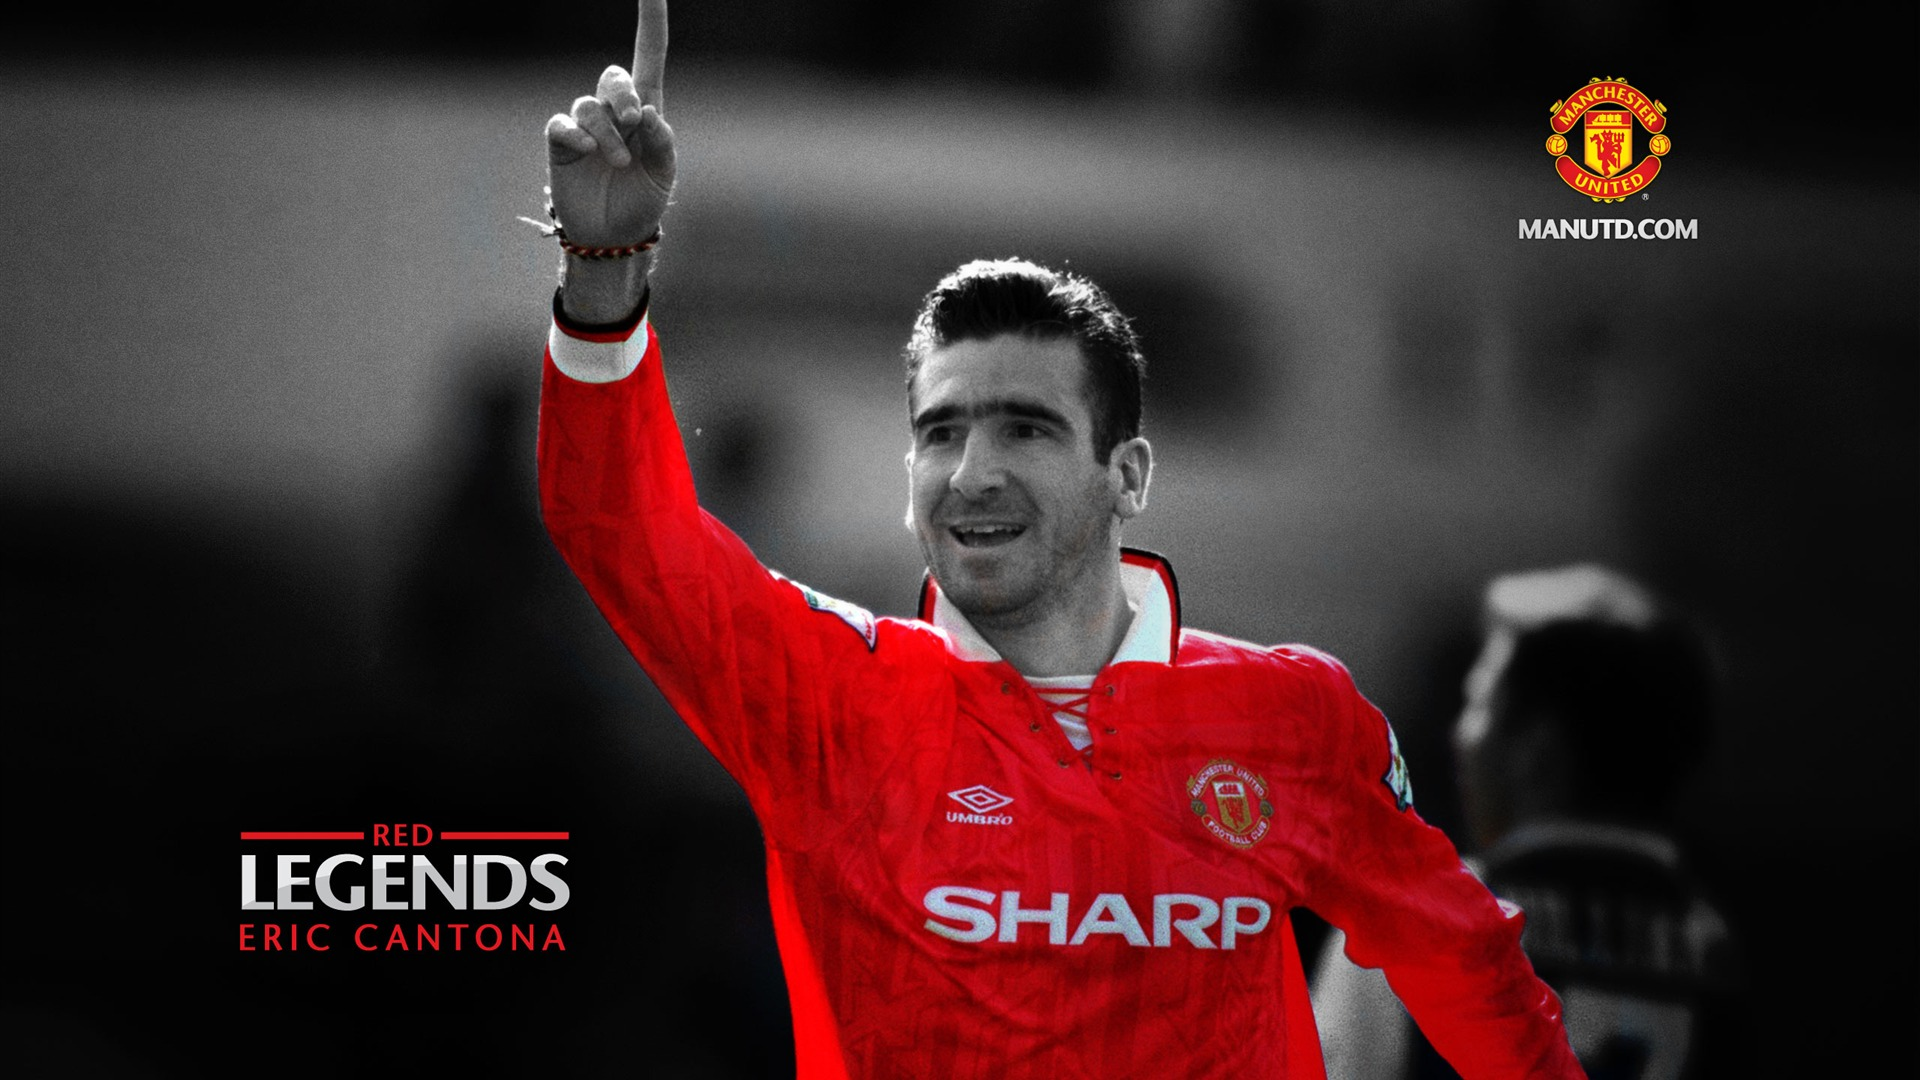 Eric cantona red legends manchester united wallpaper for Where can i get wallpaper